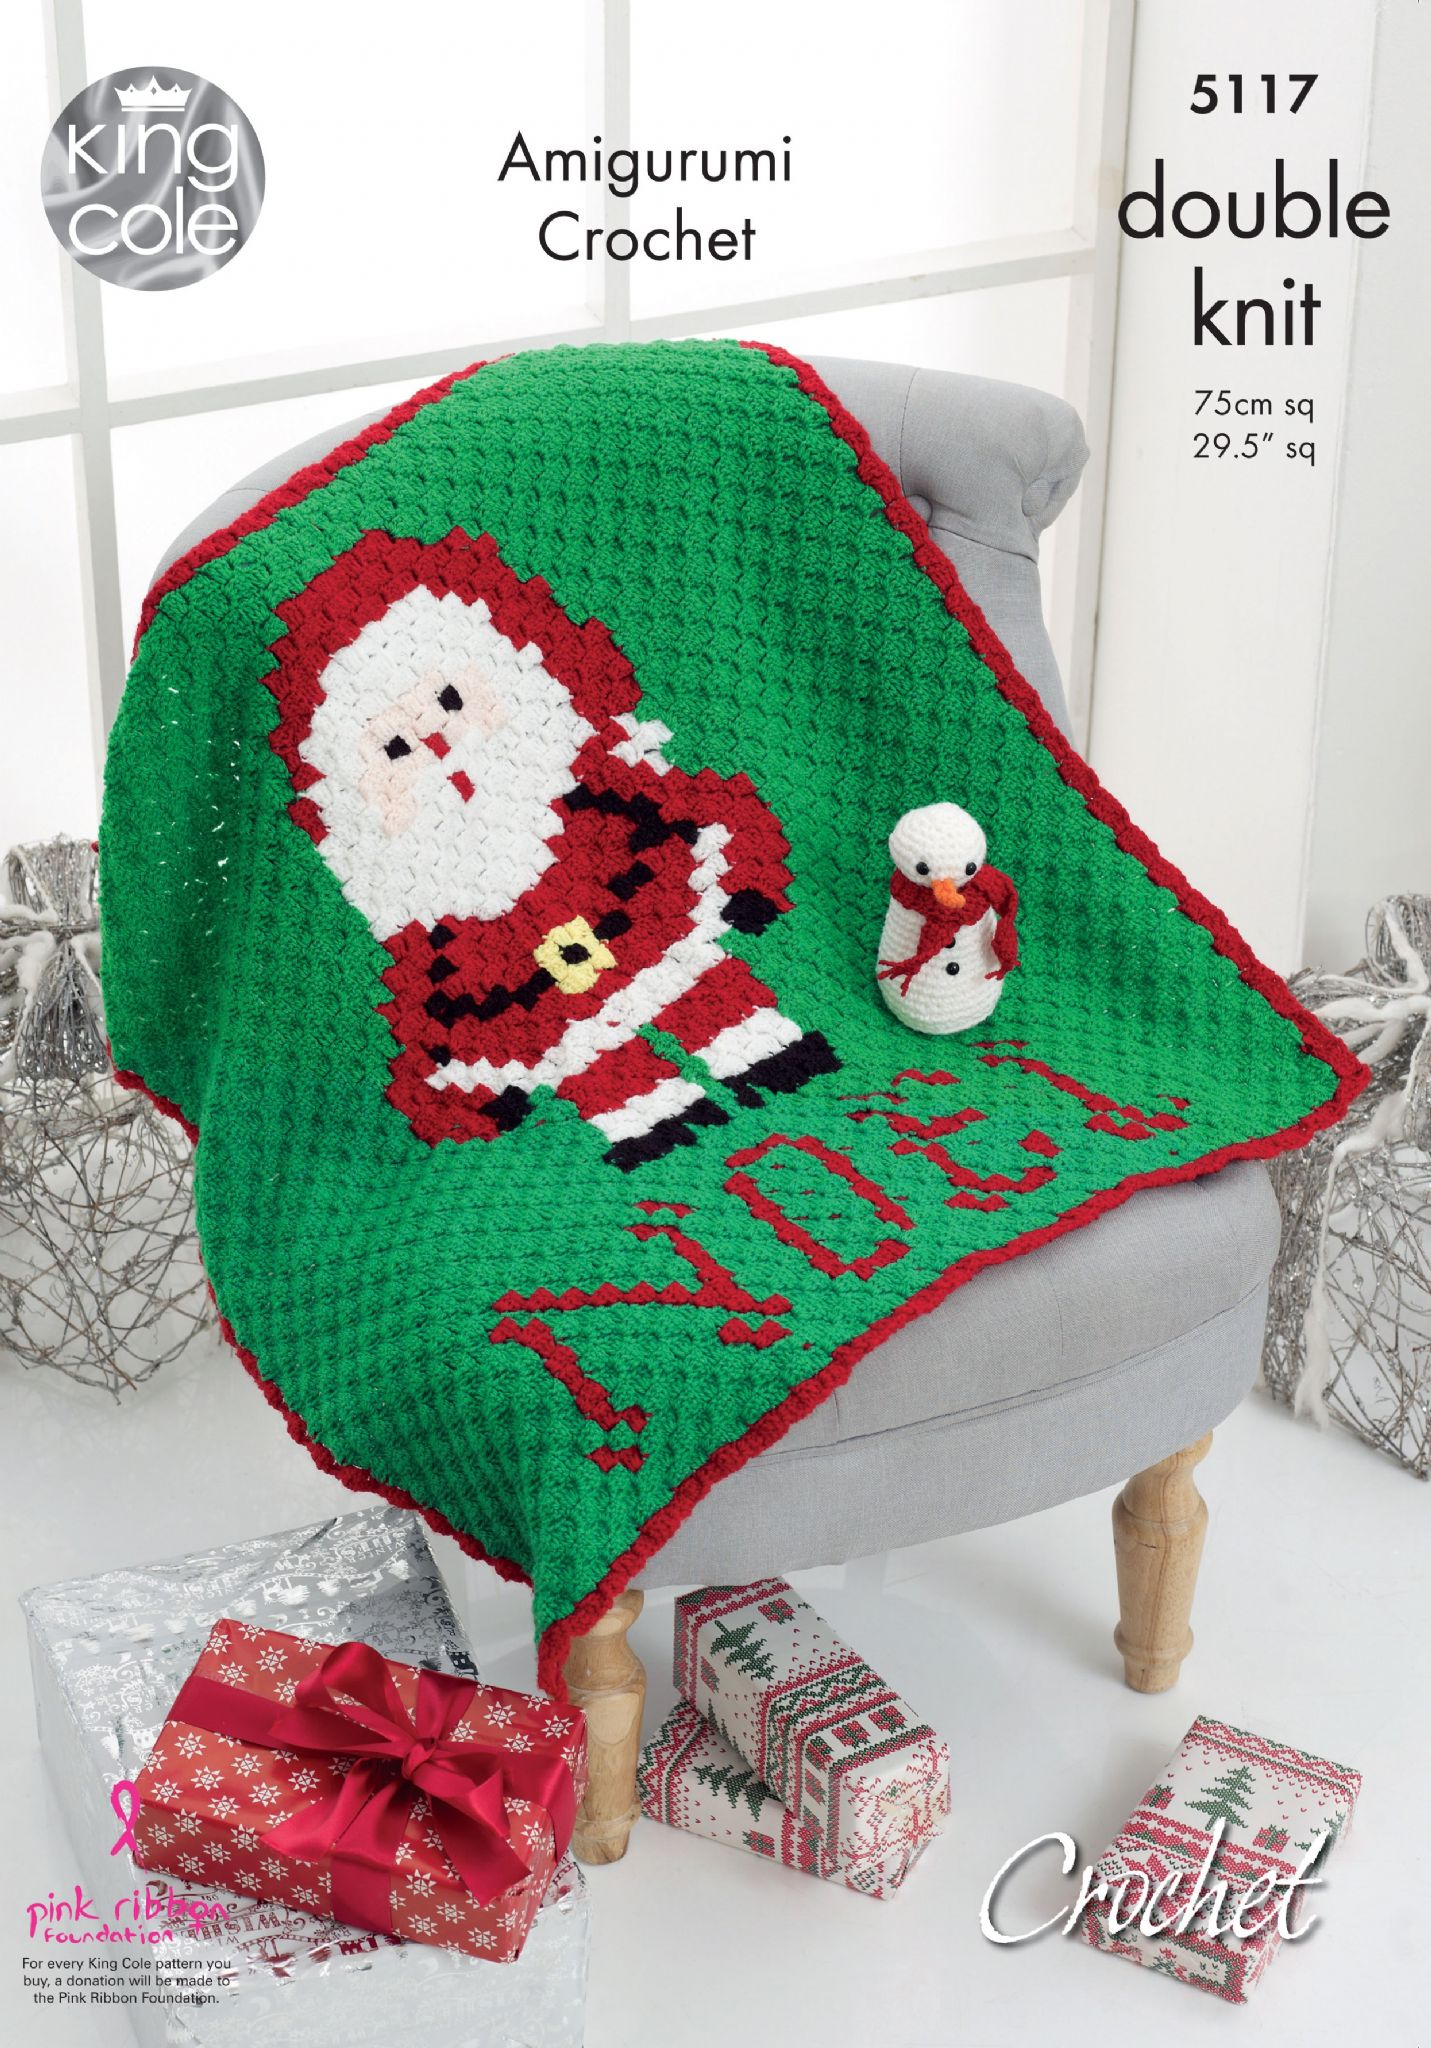 King Cole Christmas Santa Blanket and Snowman Crochet Pattern 5117